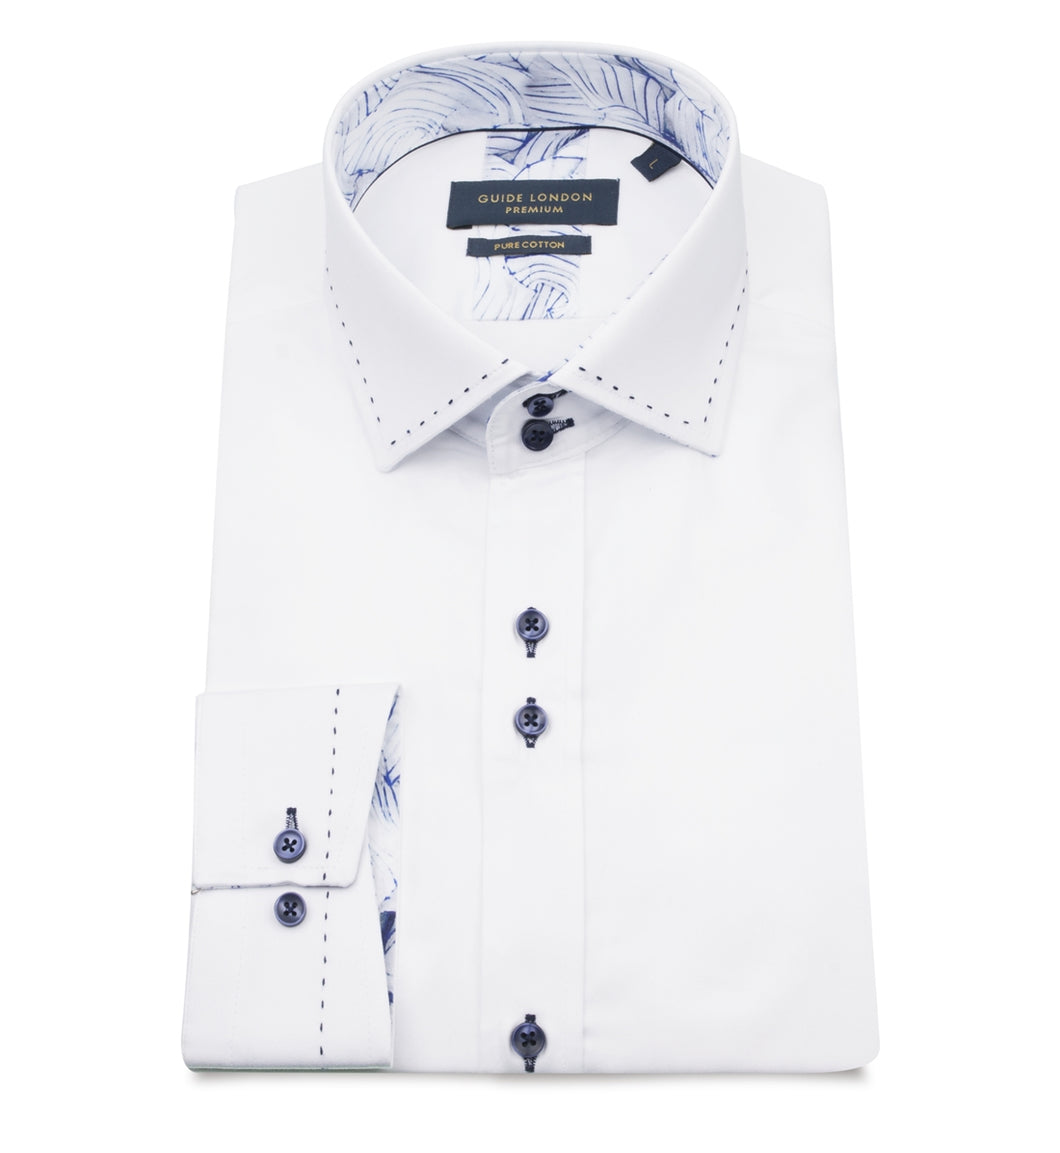 Guide London Tailor Stitch Shirt White